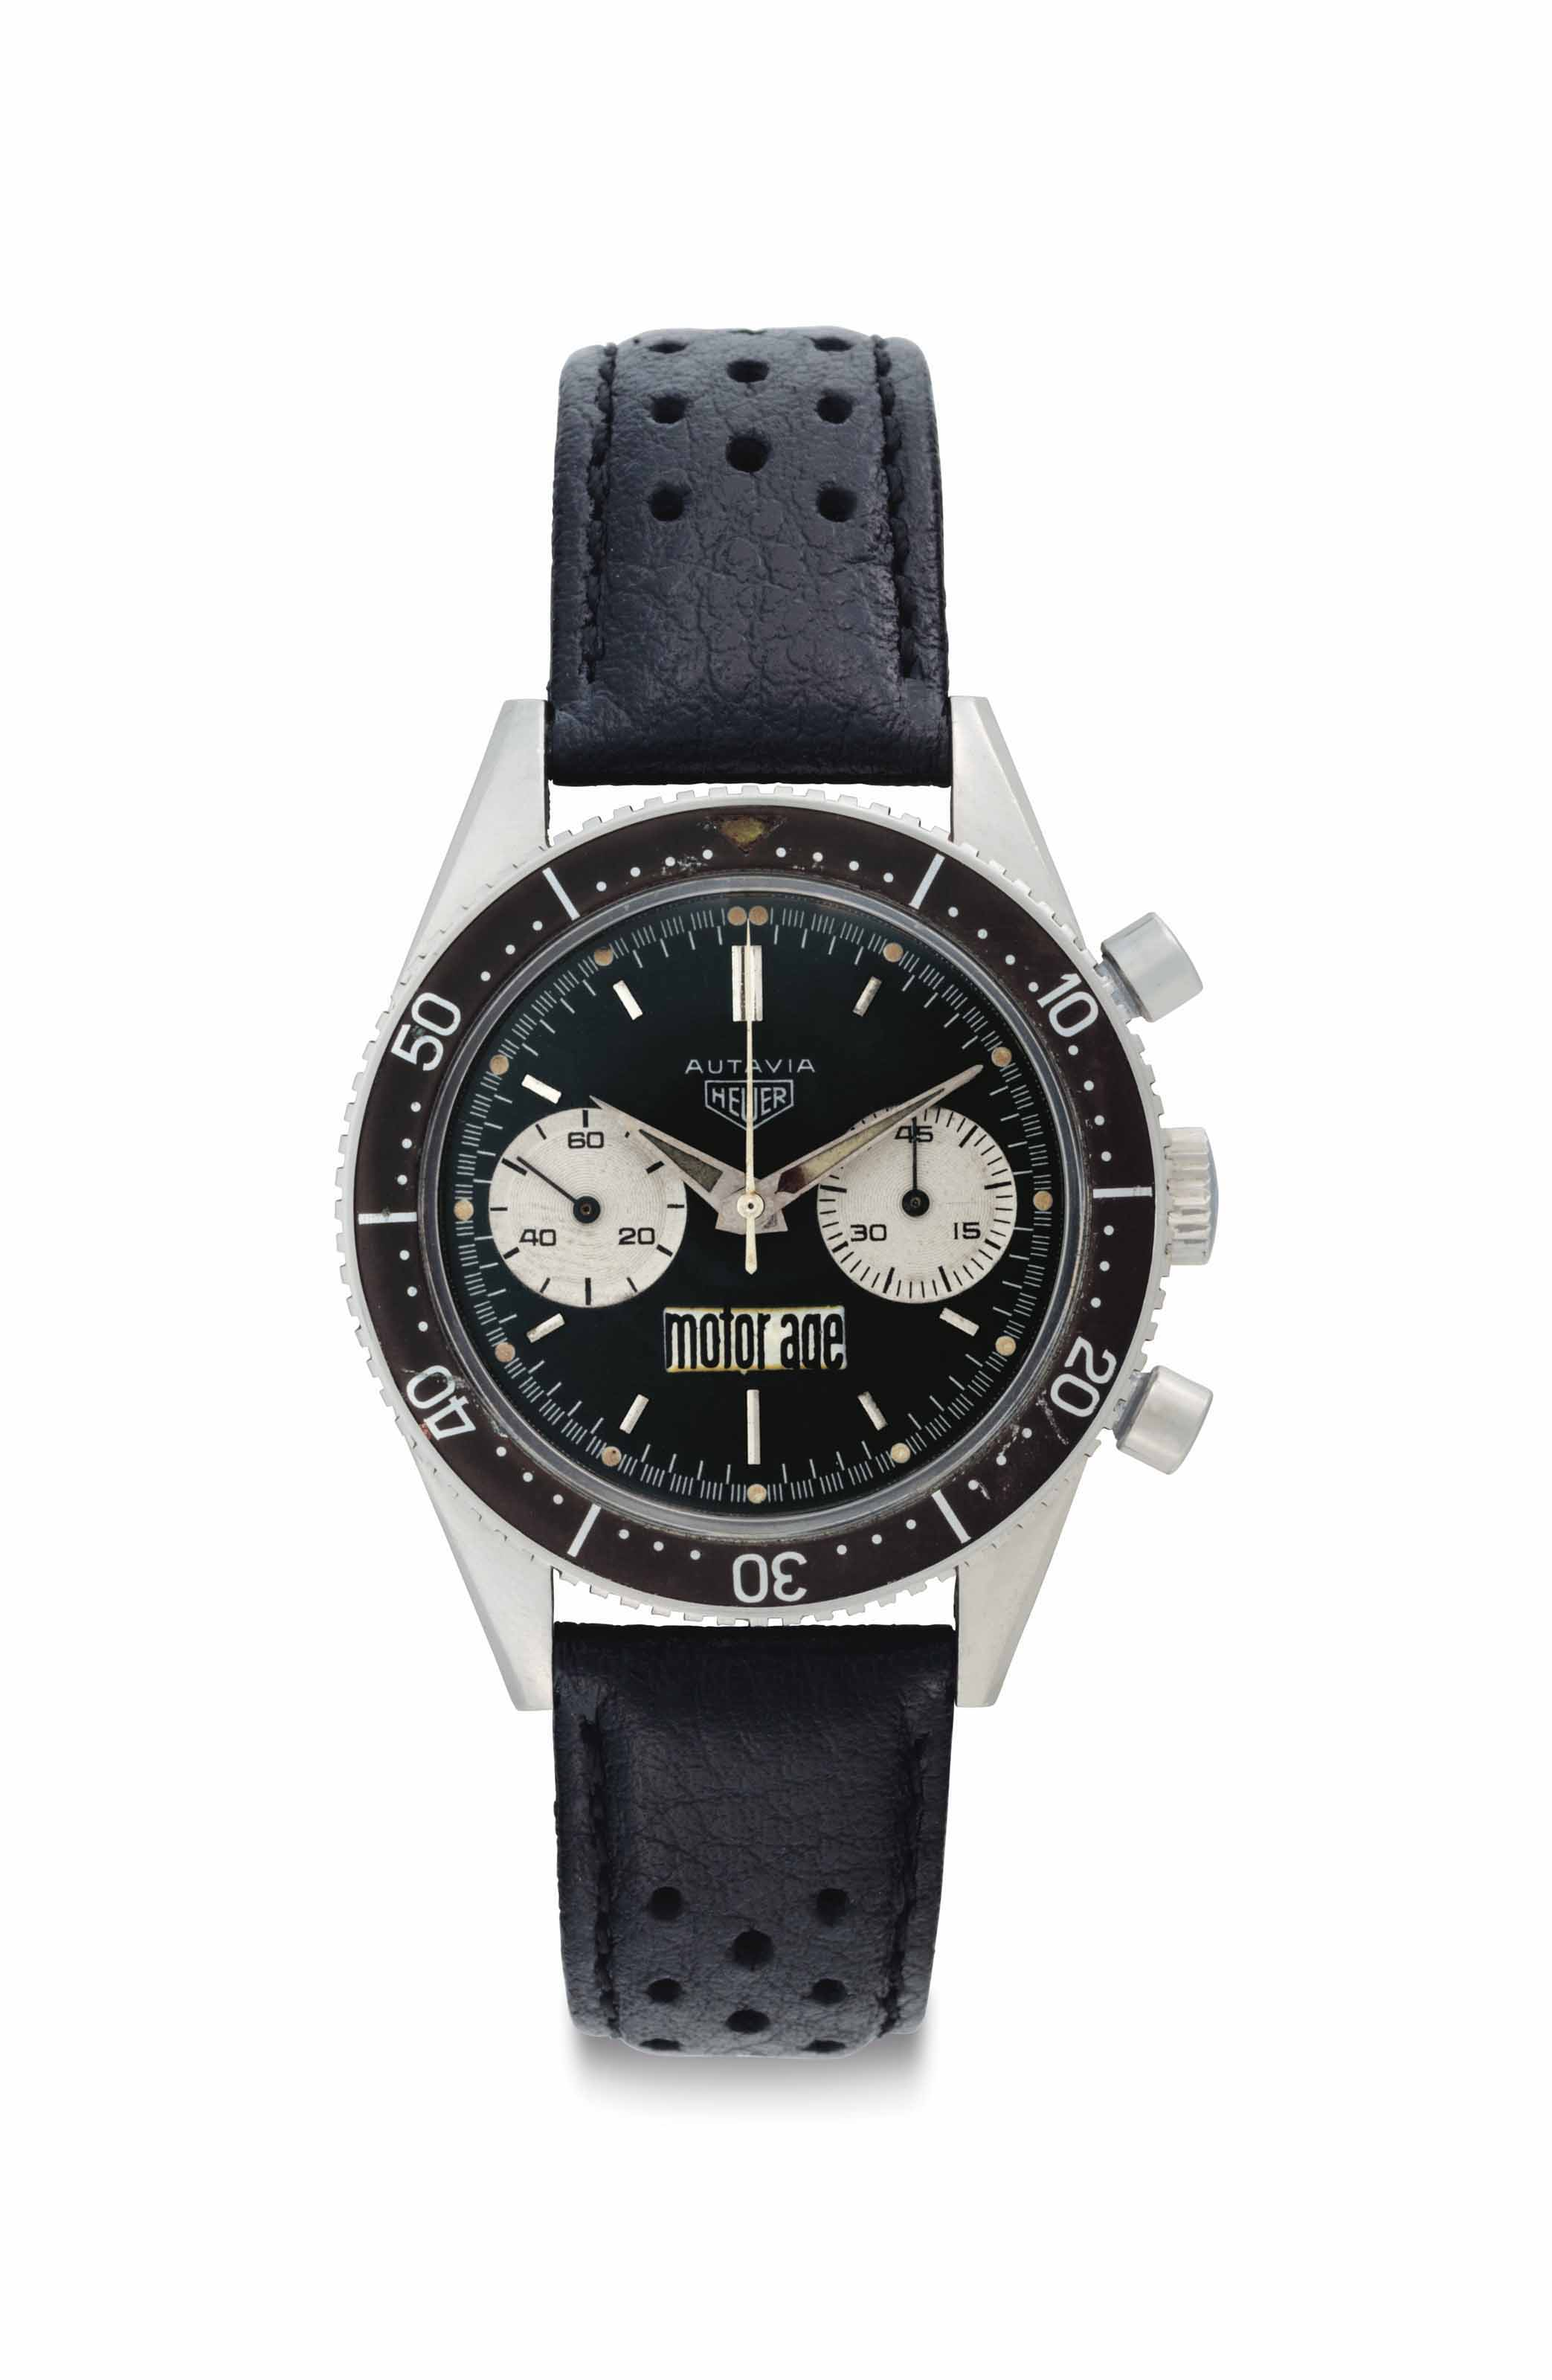 Heuer. A Very Fine and Possibly Unique Stainless Steel Chronograph Wristwatch, Formerly Belonging to American Stock Car Racing Driver Marvin Panch